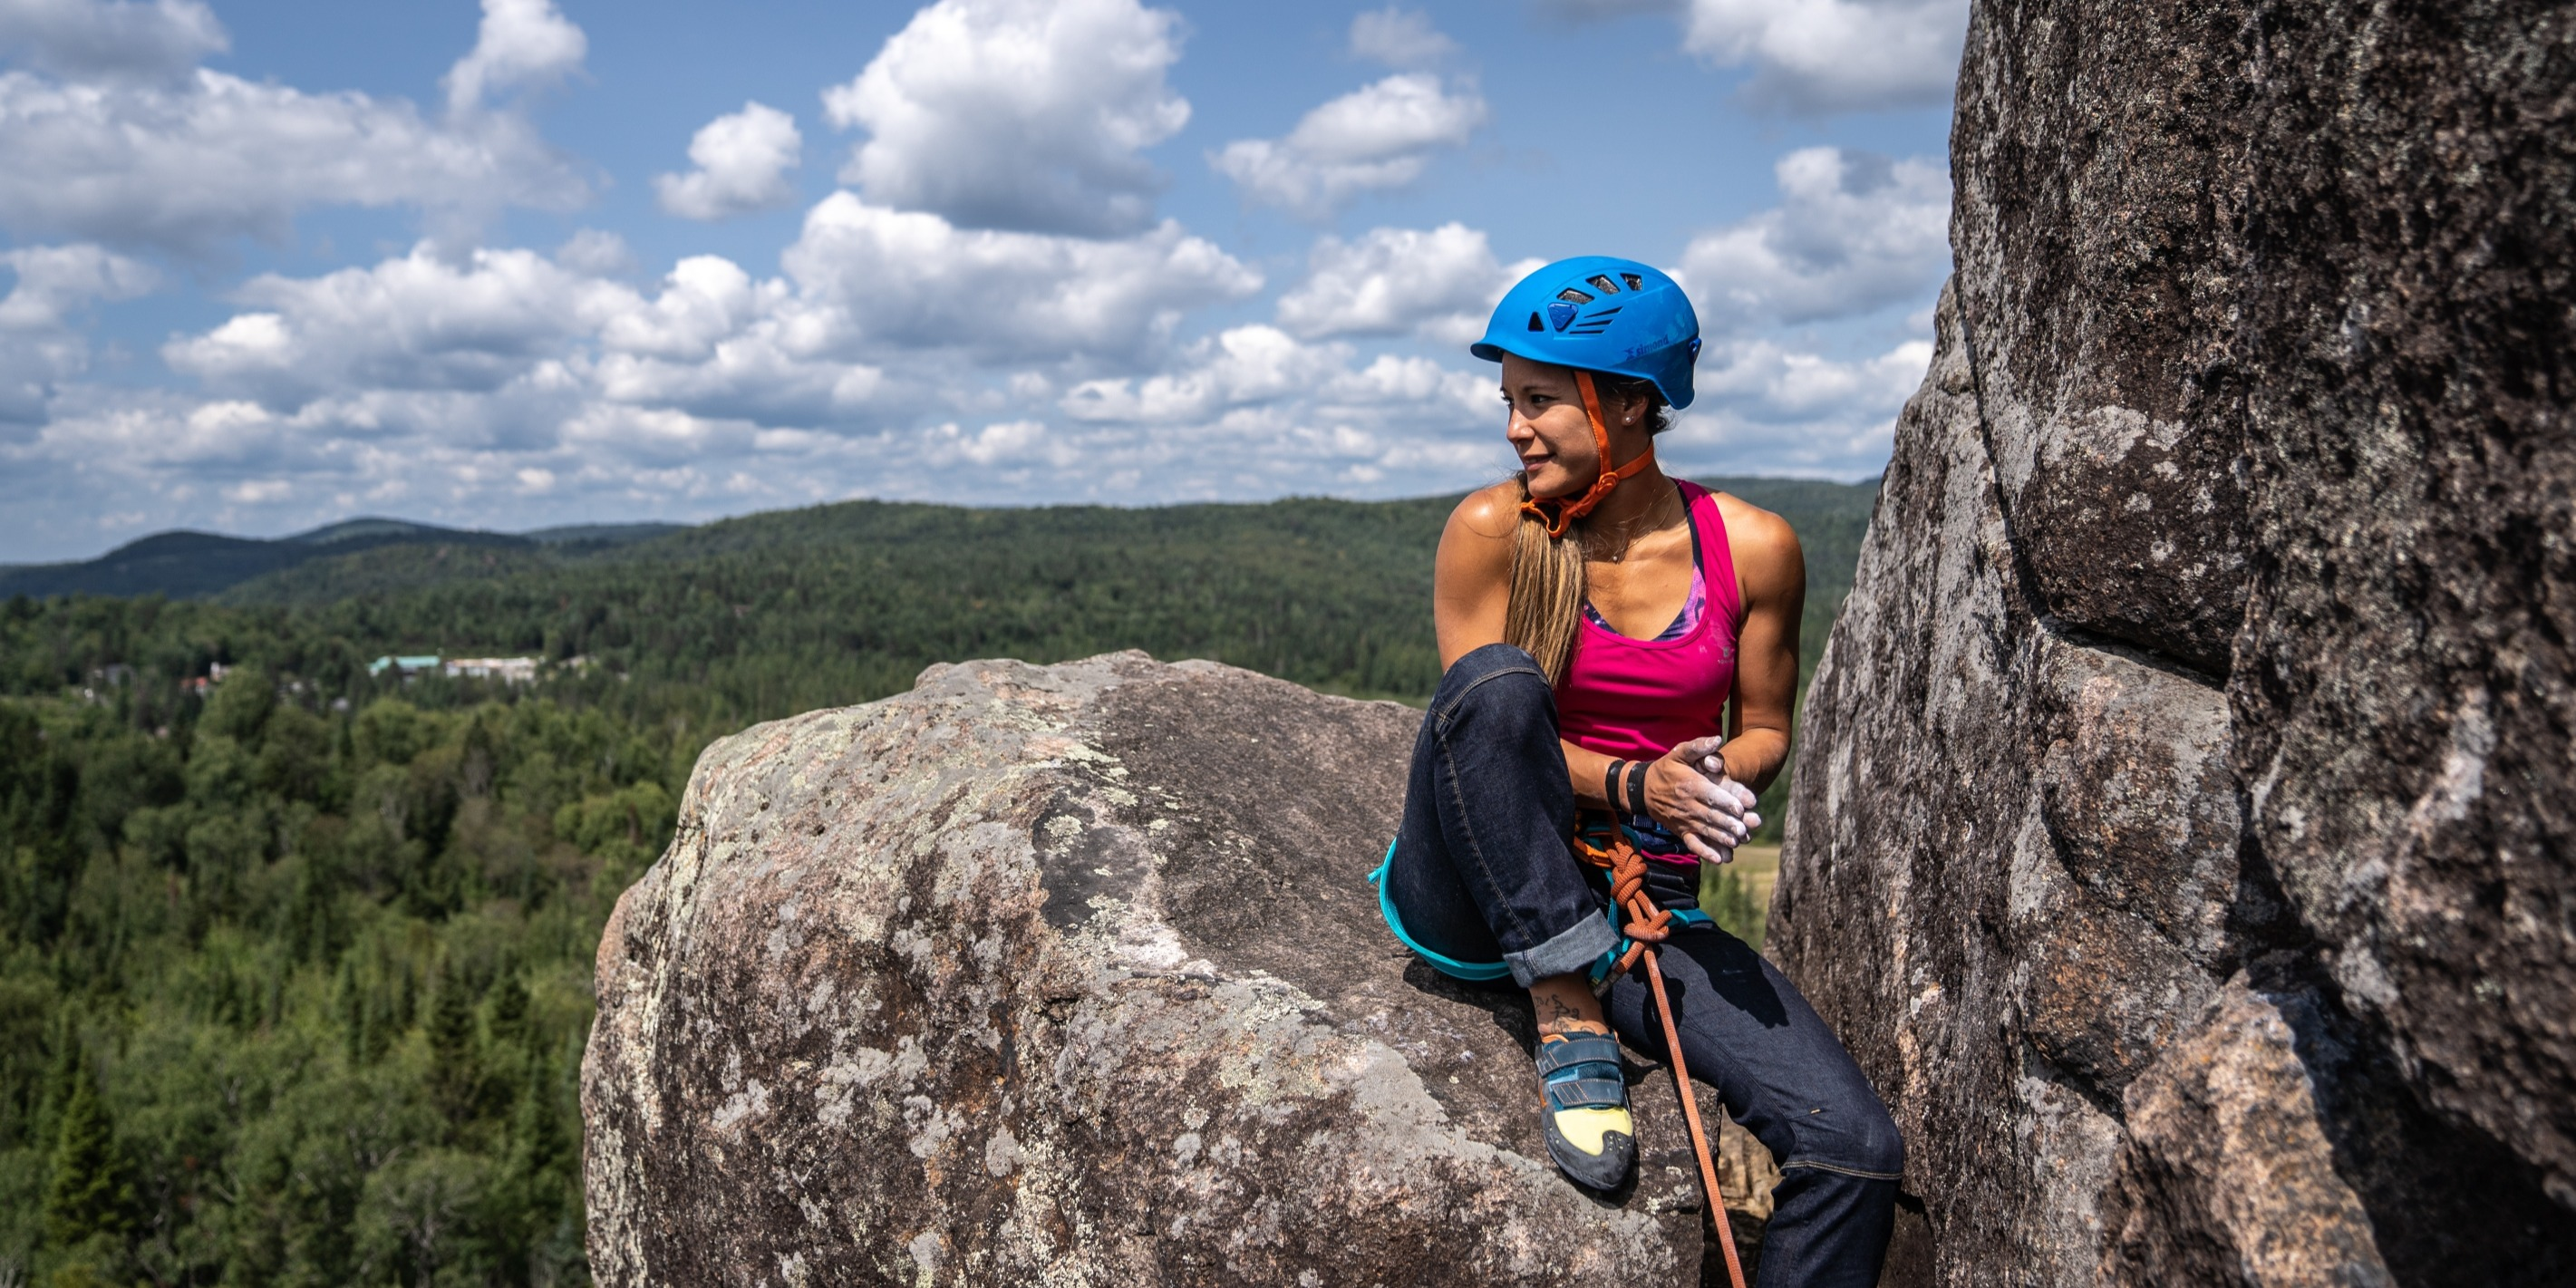 Climbing For Beginners: The Ultimate Guide To Getting Started